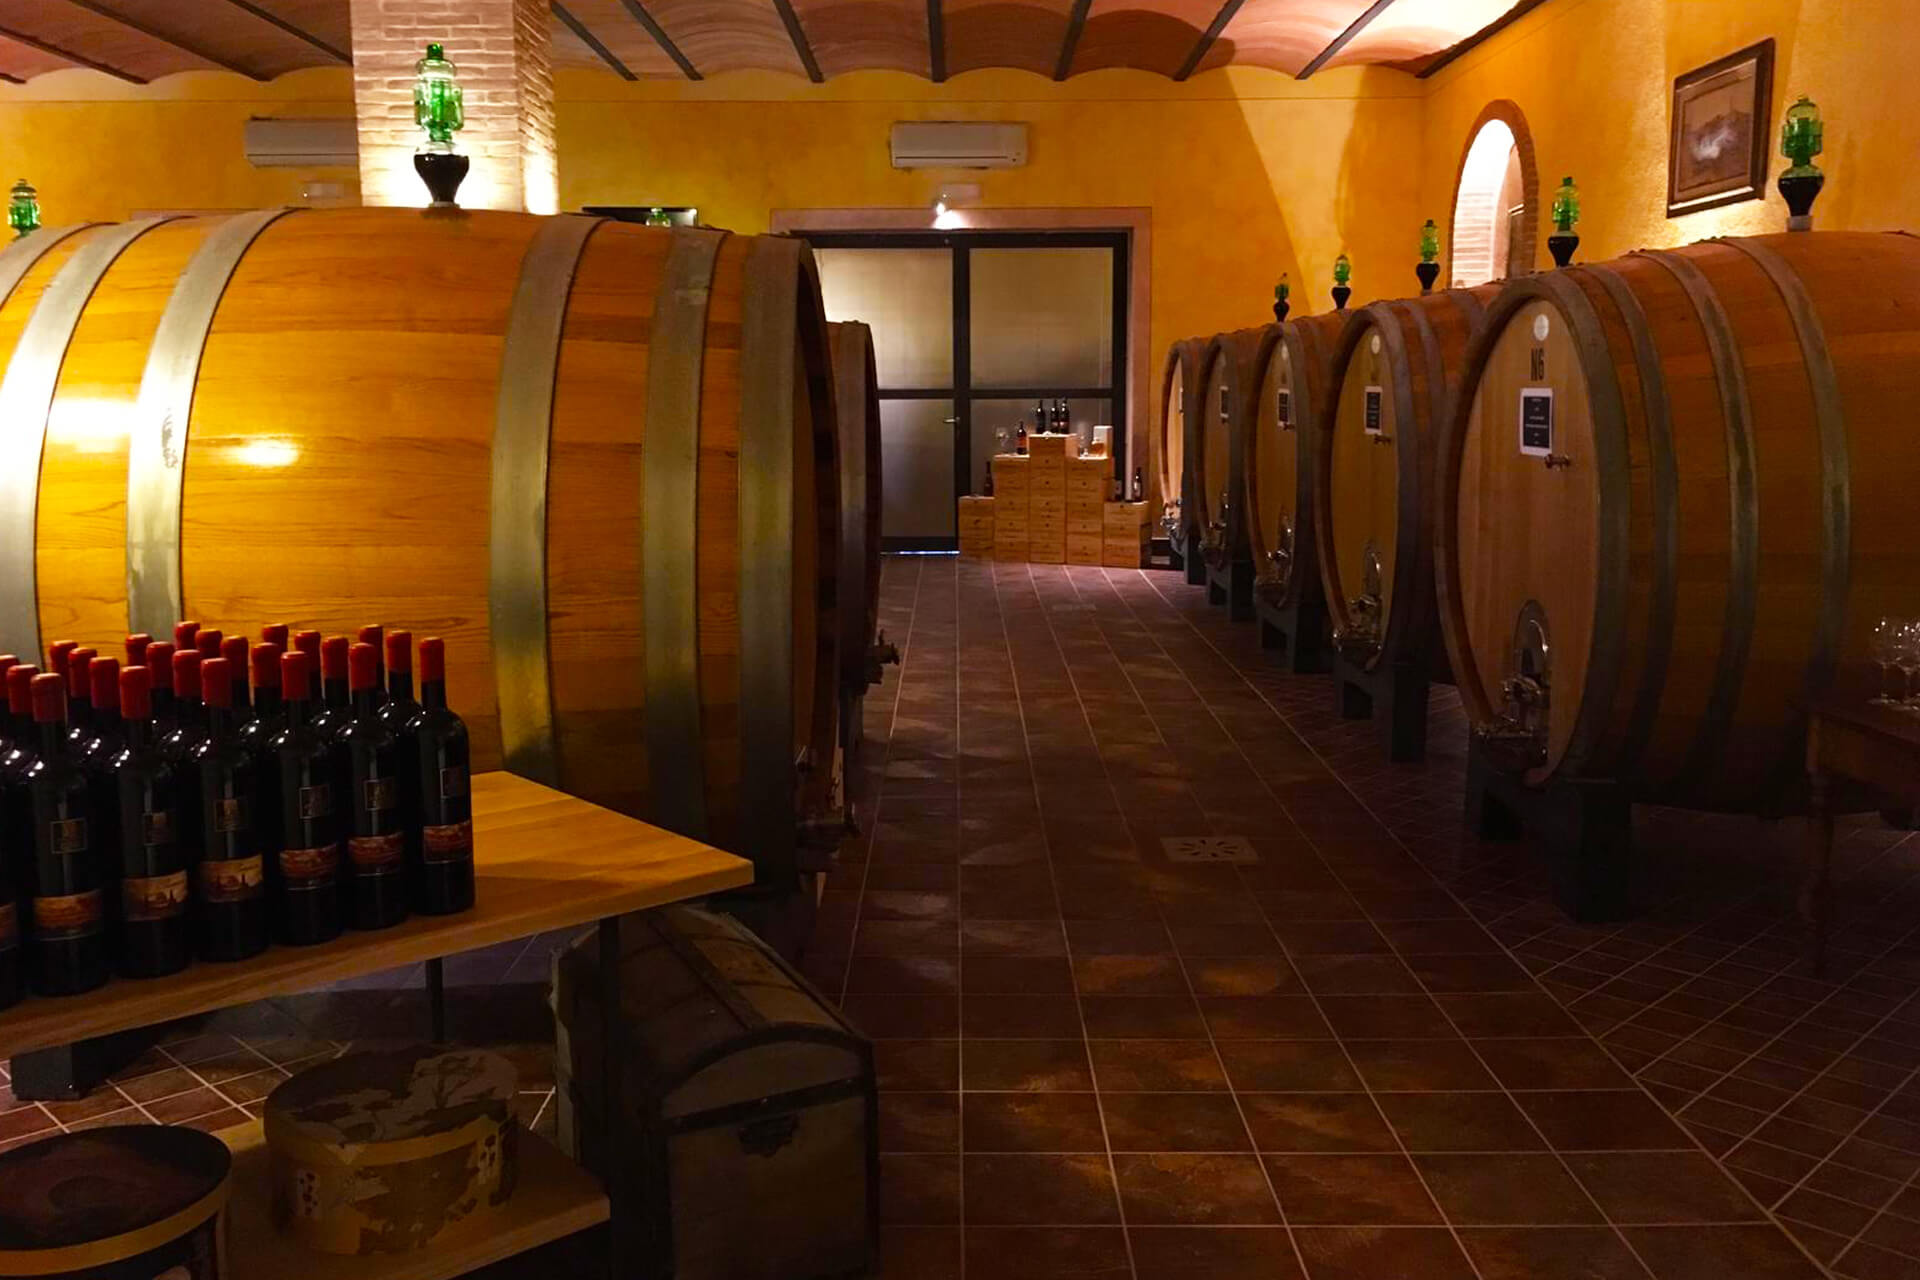 The first family-run winery